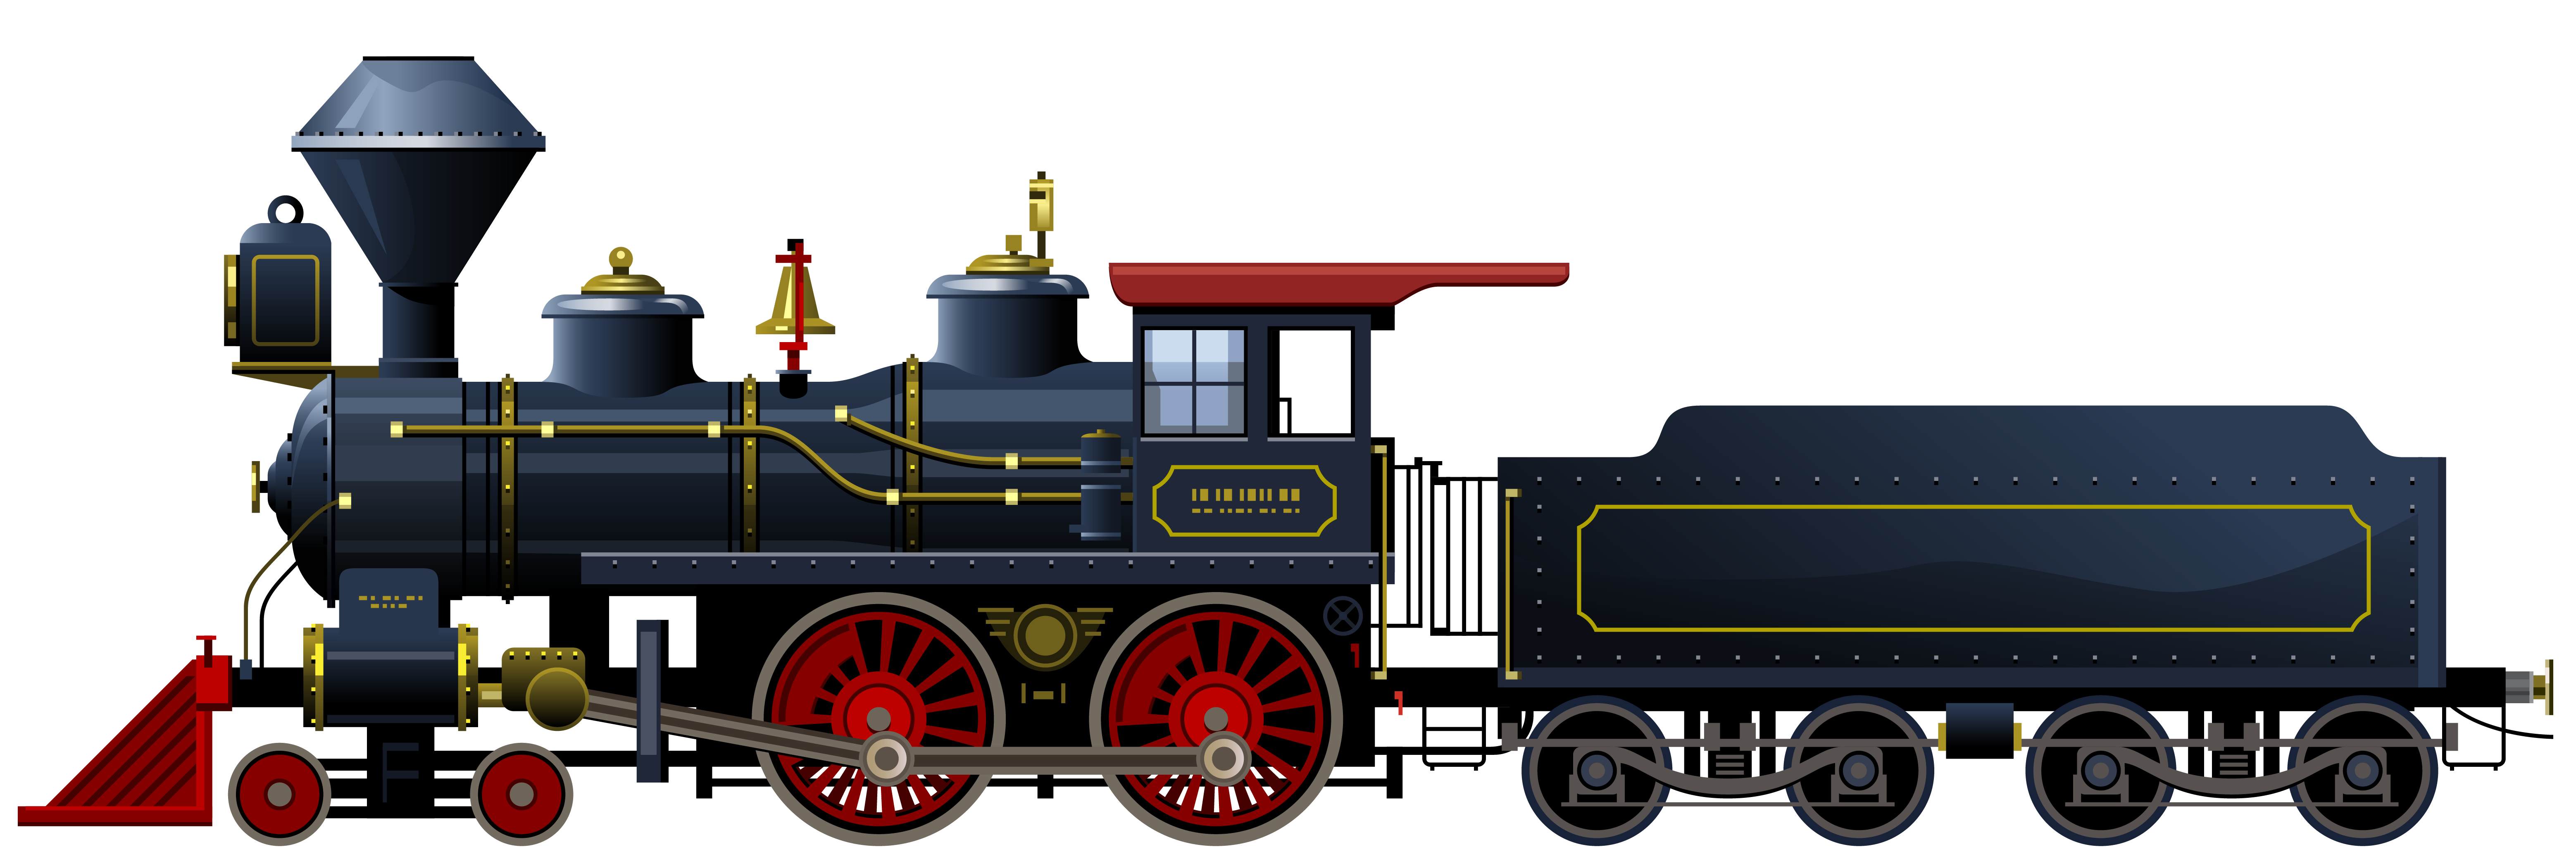 Clipart locomotive clipart black and white stock Blue Locomotive PNG Clipart - Best WEB Clipart clipart black and white stock